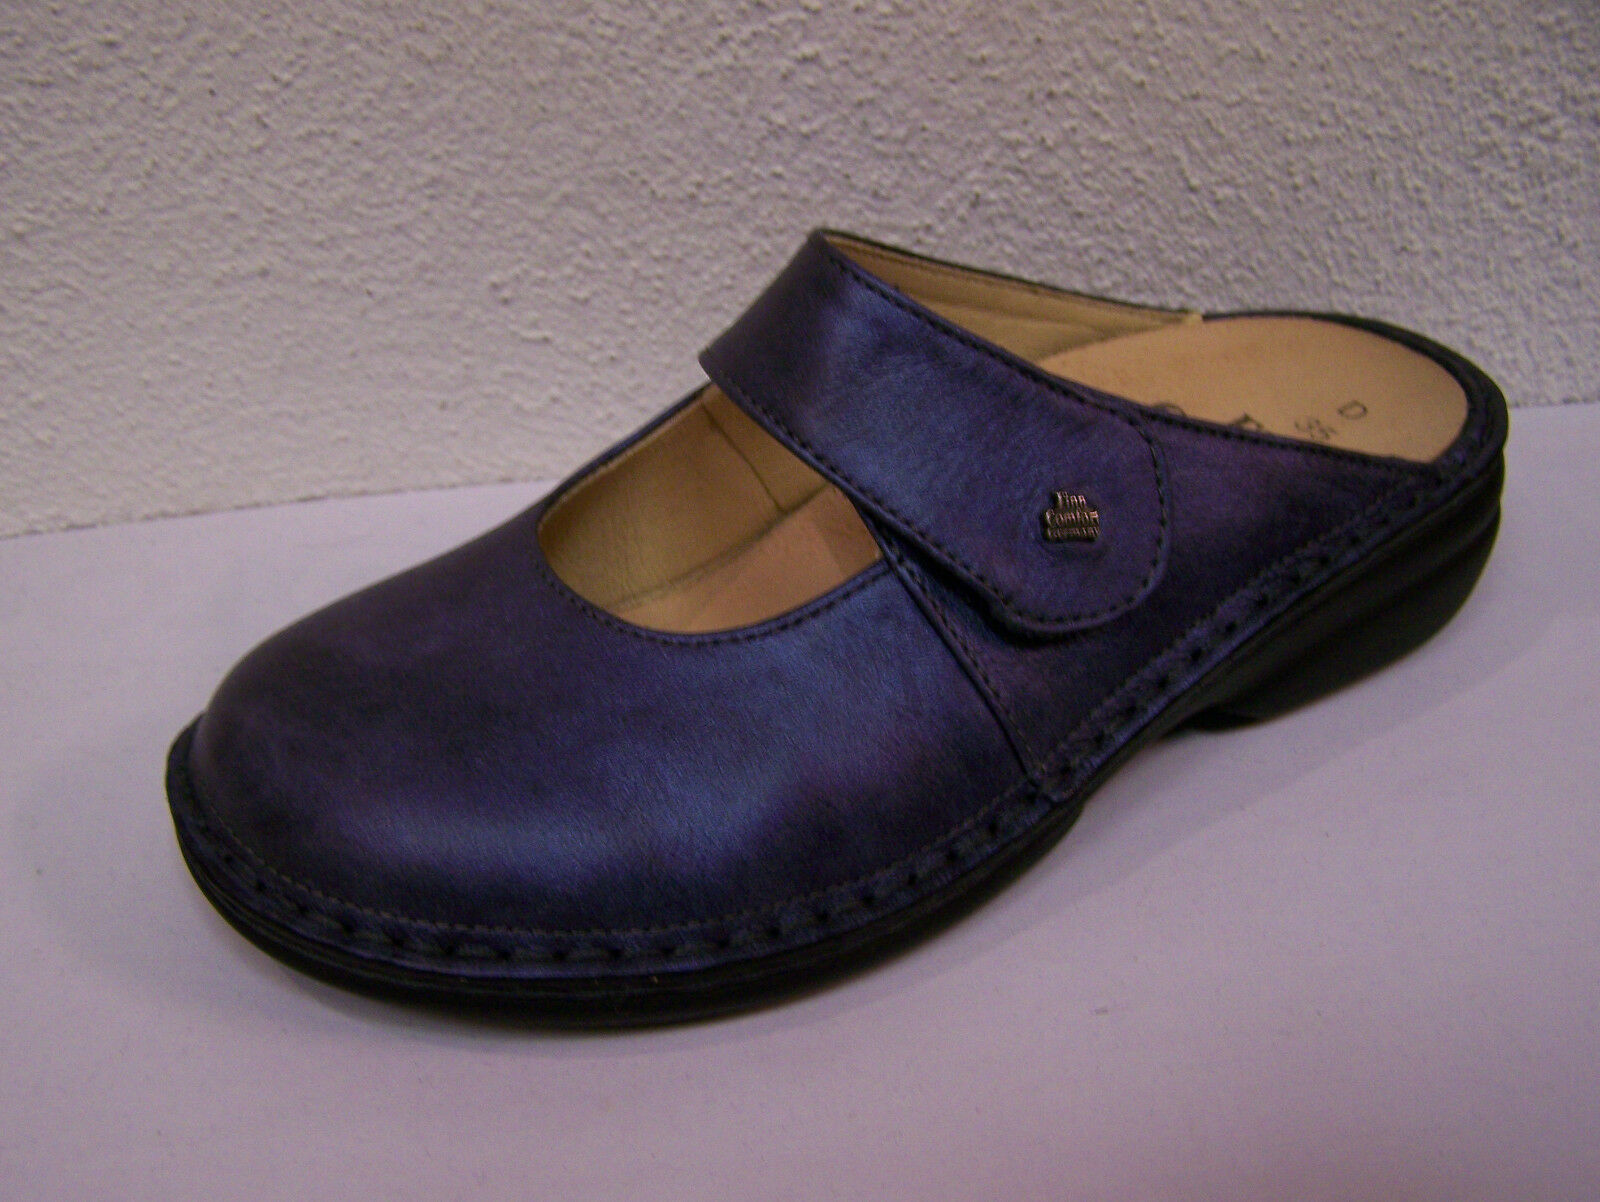 Finn Comfort Stanford bluee Metallic incl. Cotton shoes Bag Footbed